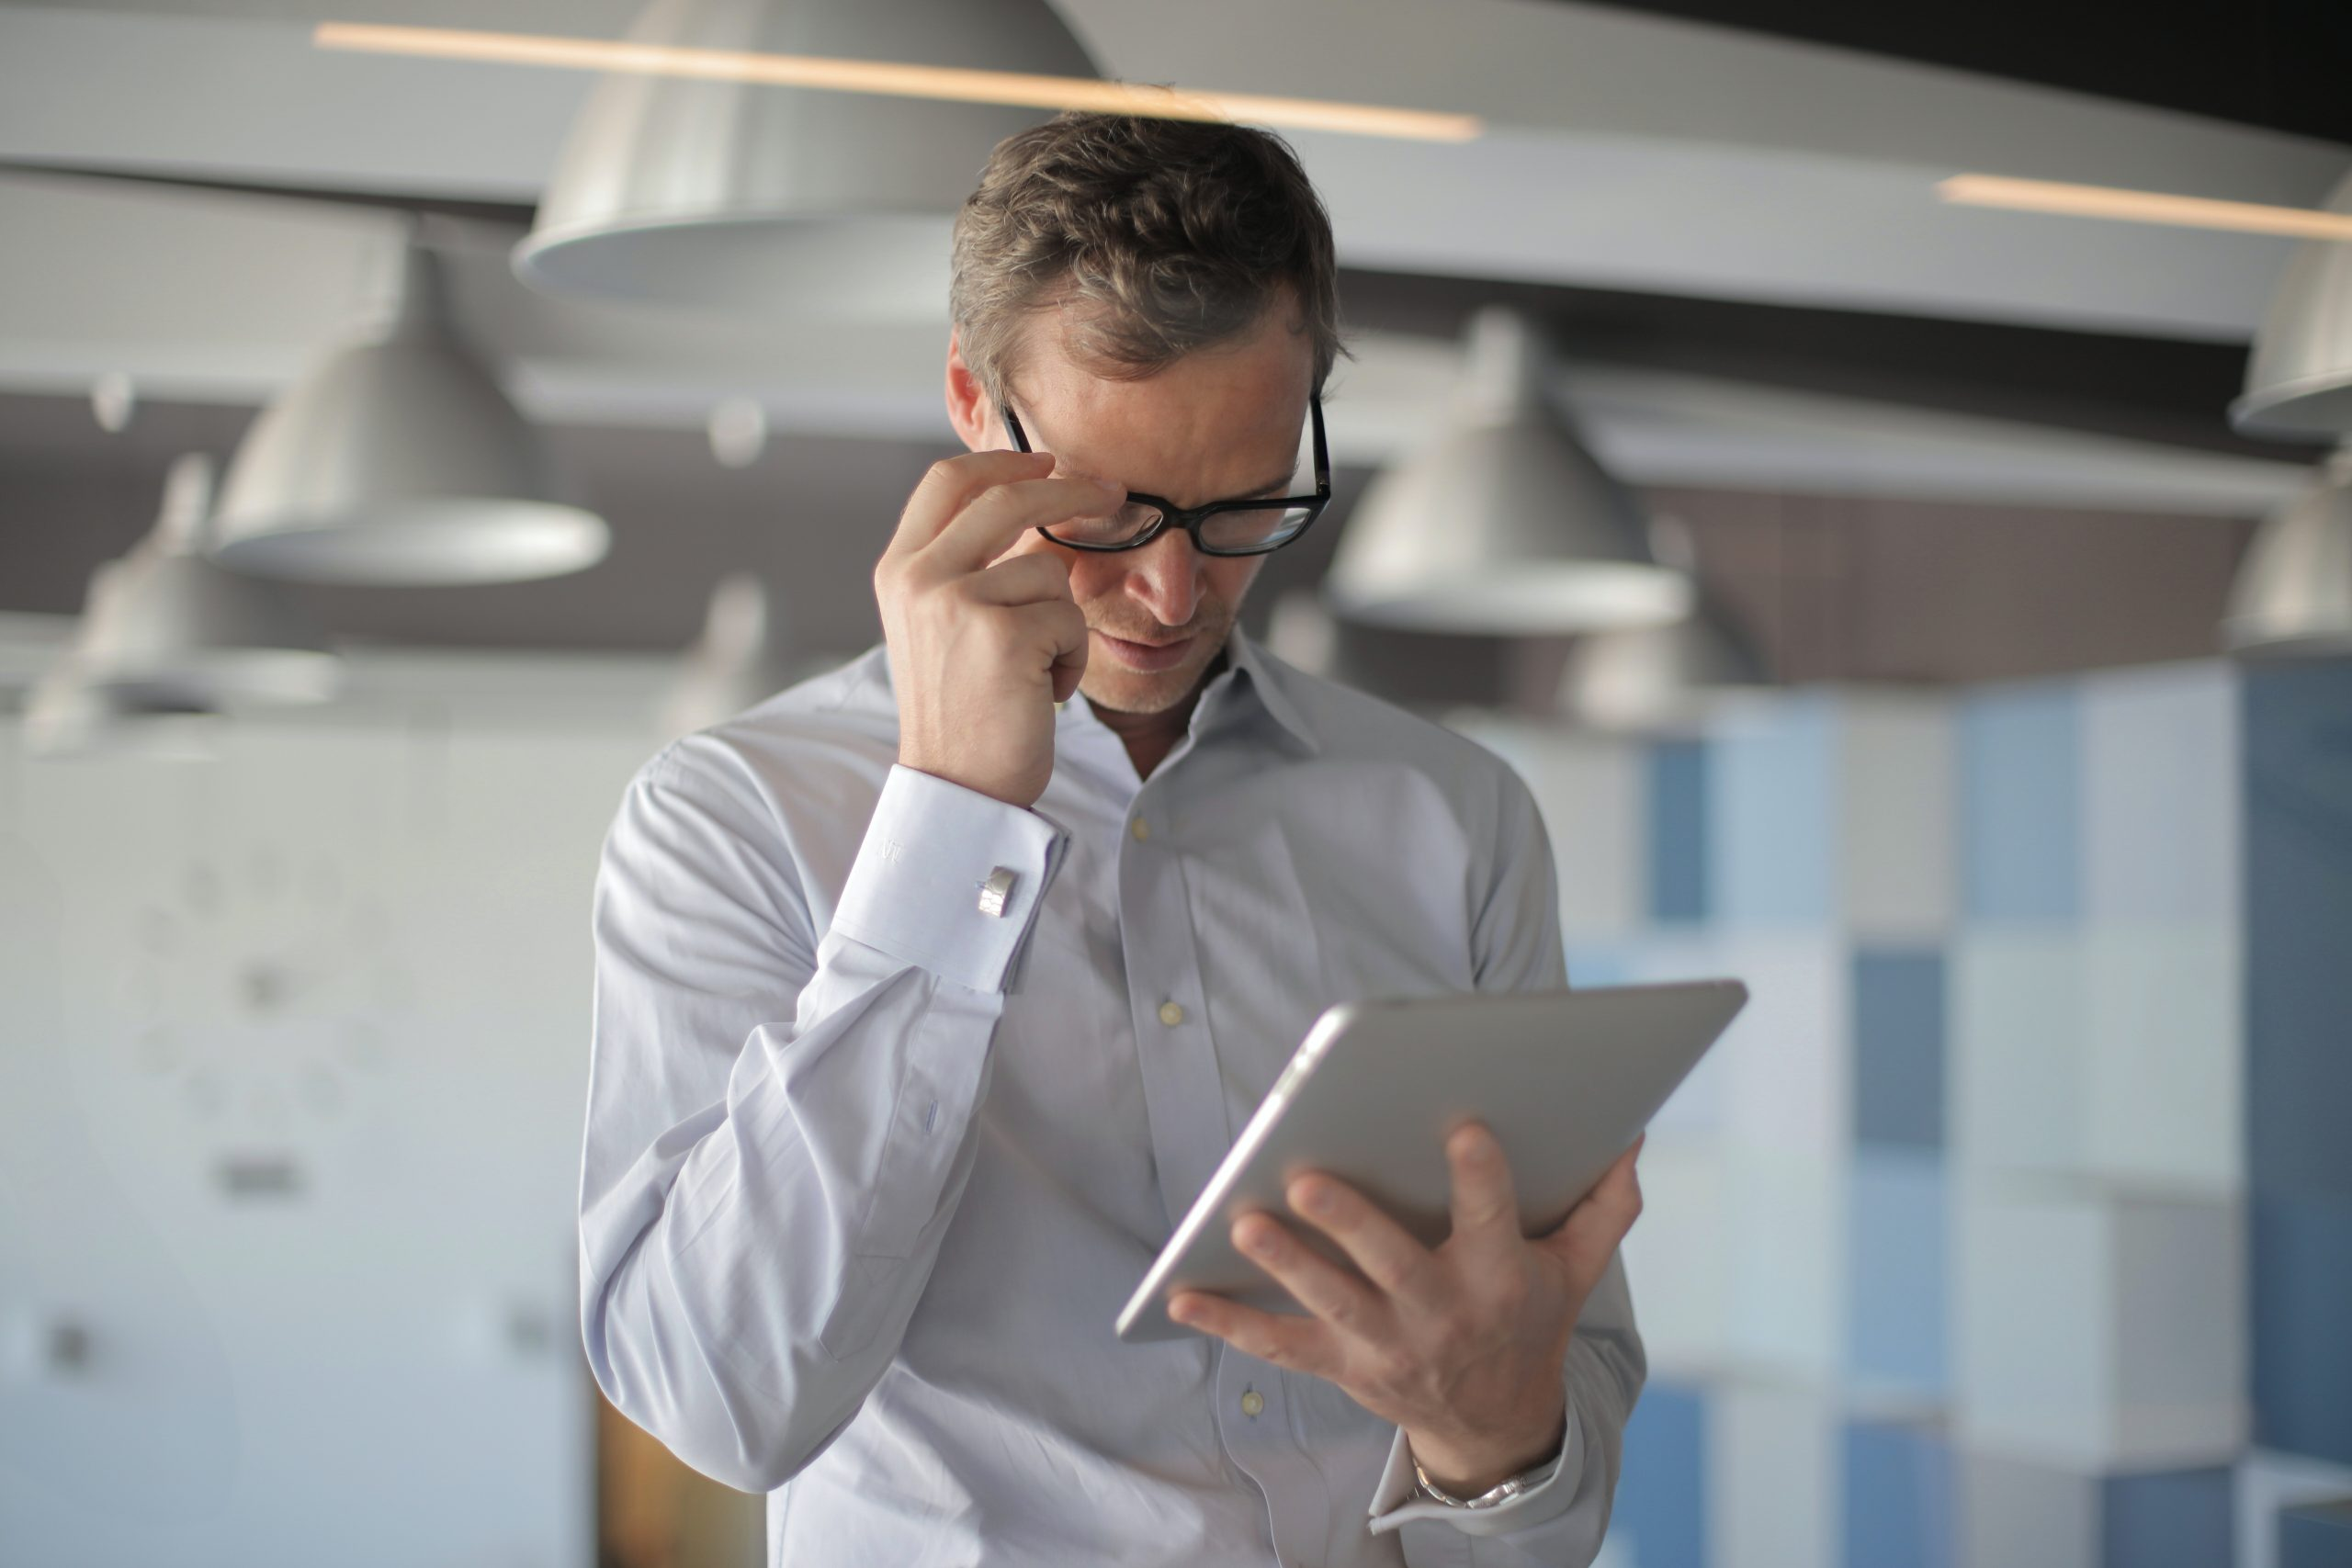 man reading an article on tablet 3760096 scaled